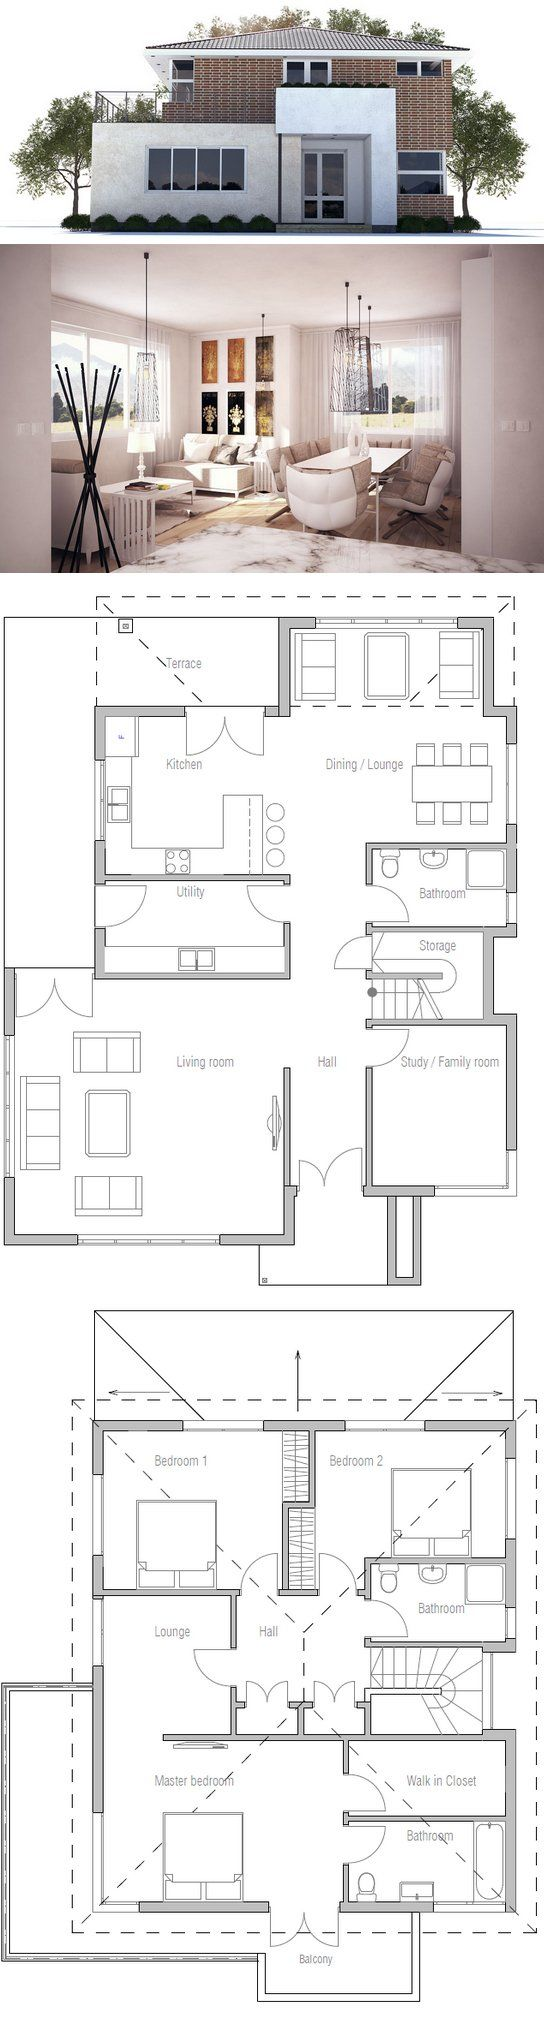 Modern House Plan With Three Bedrooms Large Living Room Separate Dining Area Lounge